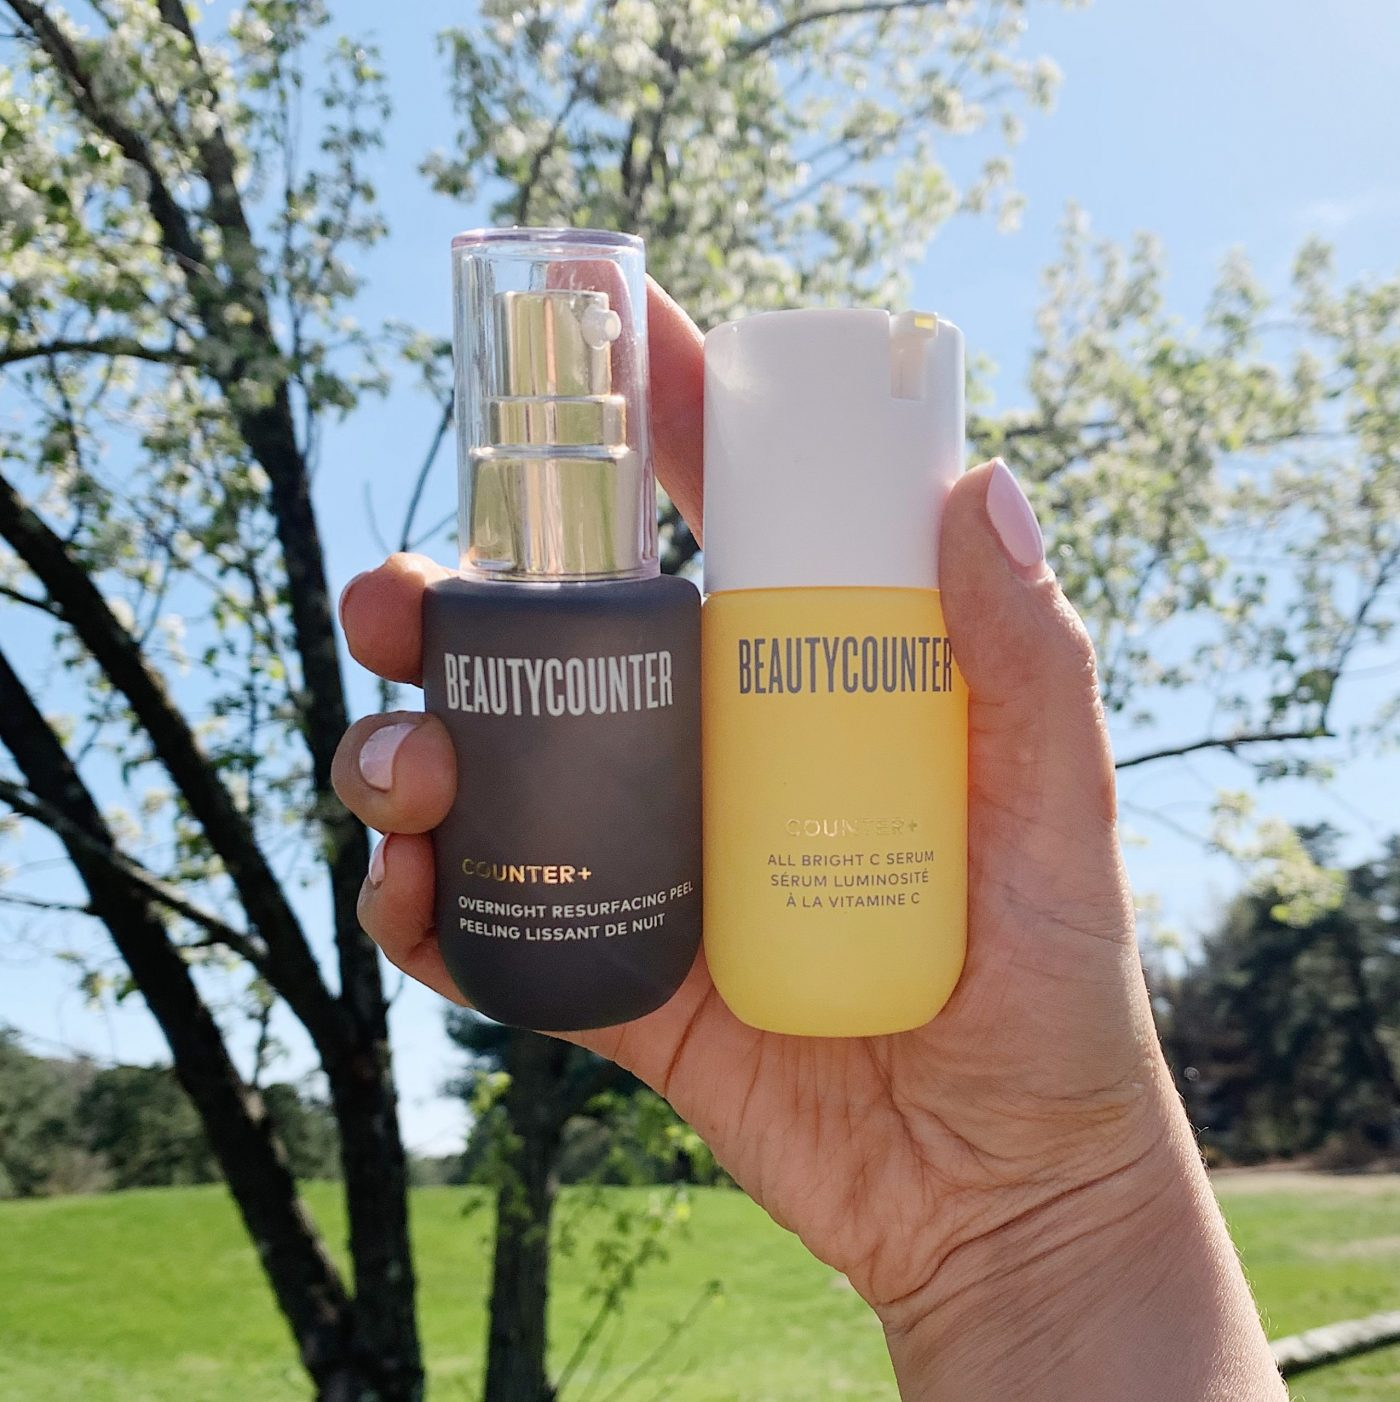 Glowing Skin Products | Beautycounter Overnight Resurfacing Peel and All Bright C Serum | Chemical Exfoliant and Vitamin C Serum | Brighter Darling Blog